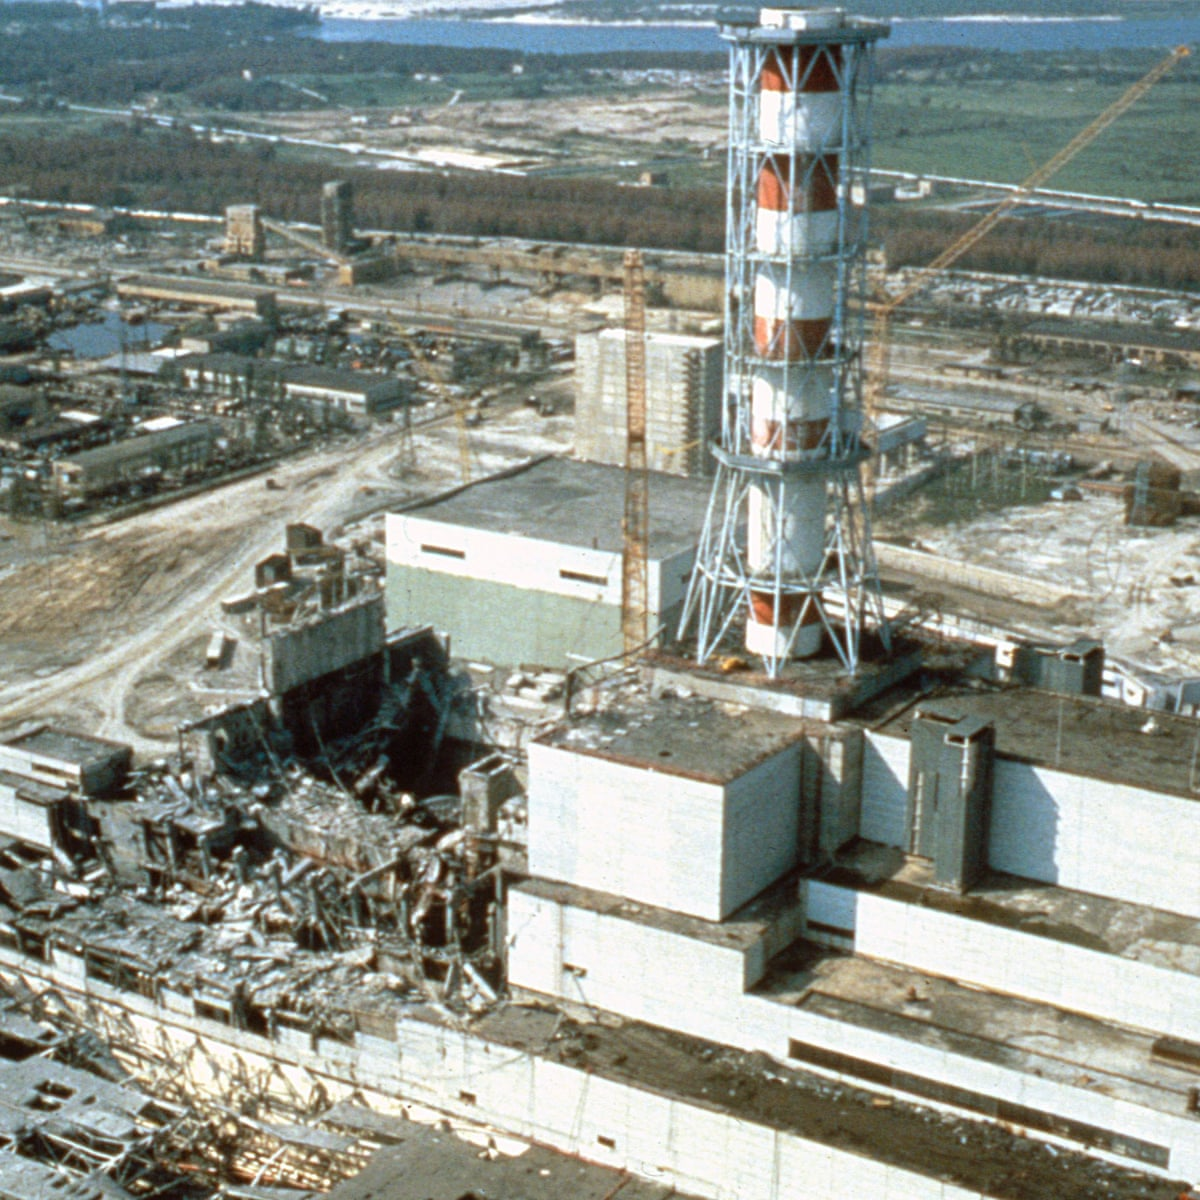 The Chernobyl Nuclear Power Plant Disaster with Adam Higginbotham